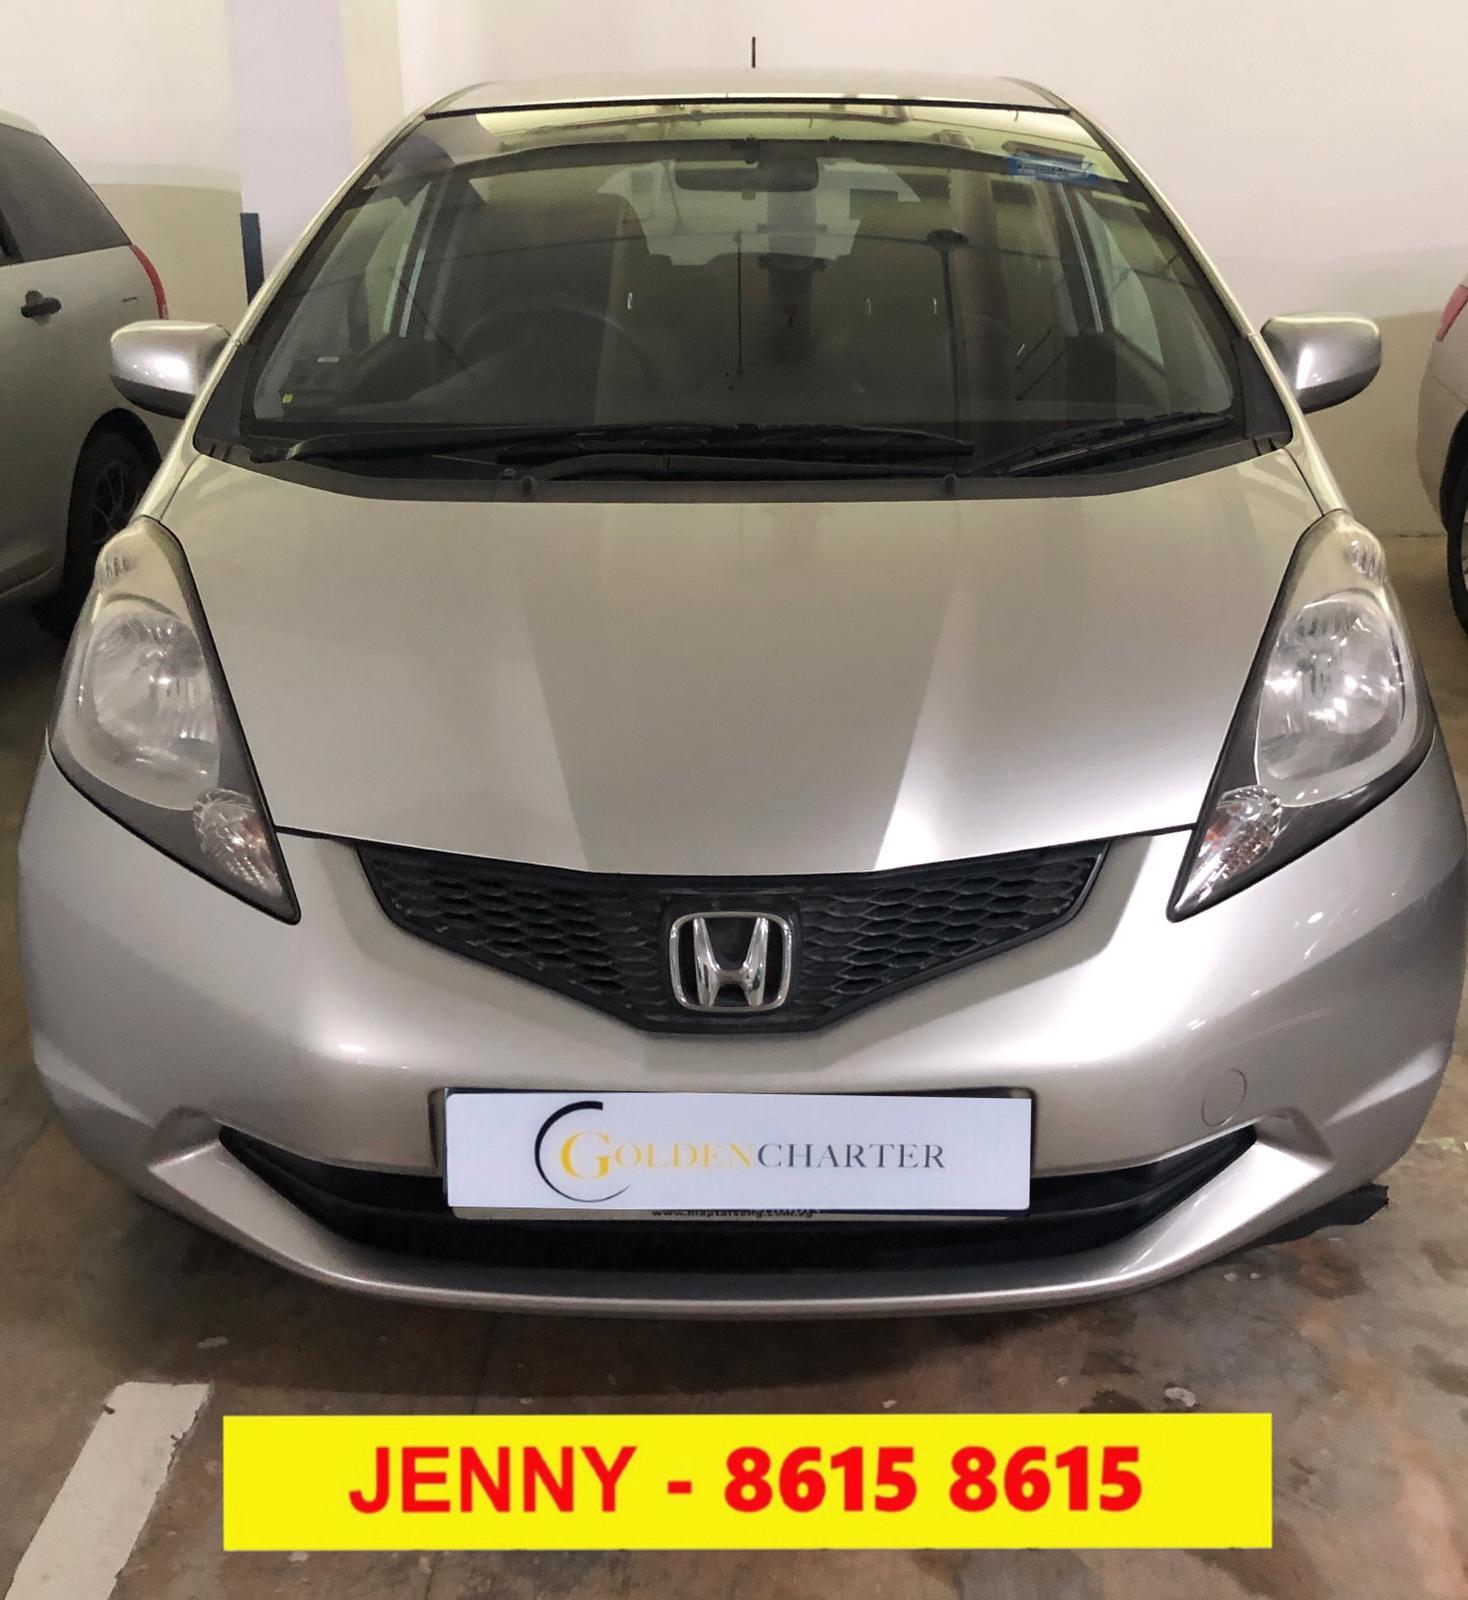 !LAST UNIT!HONDA JAZZ $300 phv  For Rent Lease To Own Grab Rental Gojek Or Personal Use Low price and Cheap